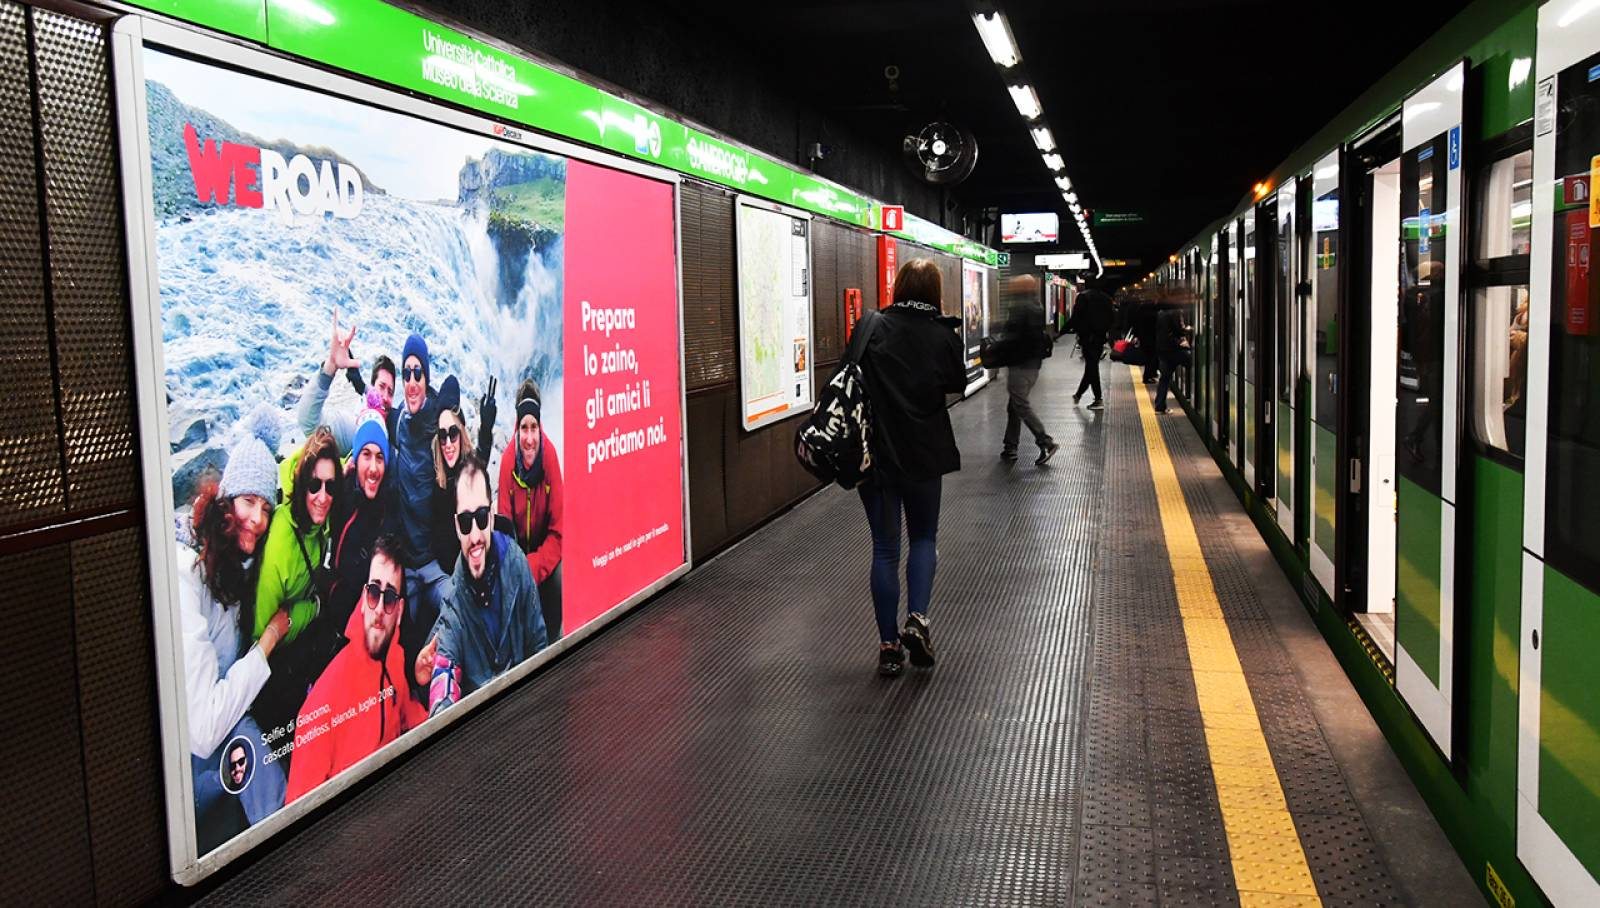 Underground advertising IGPDecaux in Milan Landscape coverage network for WeRoad